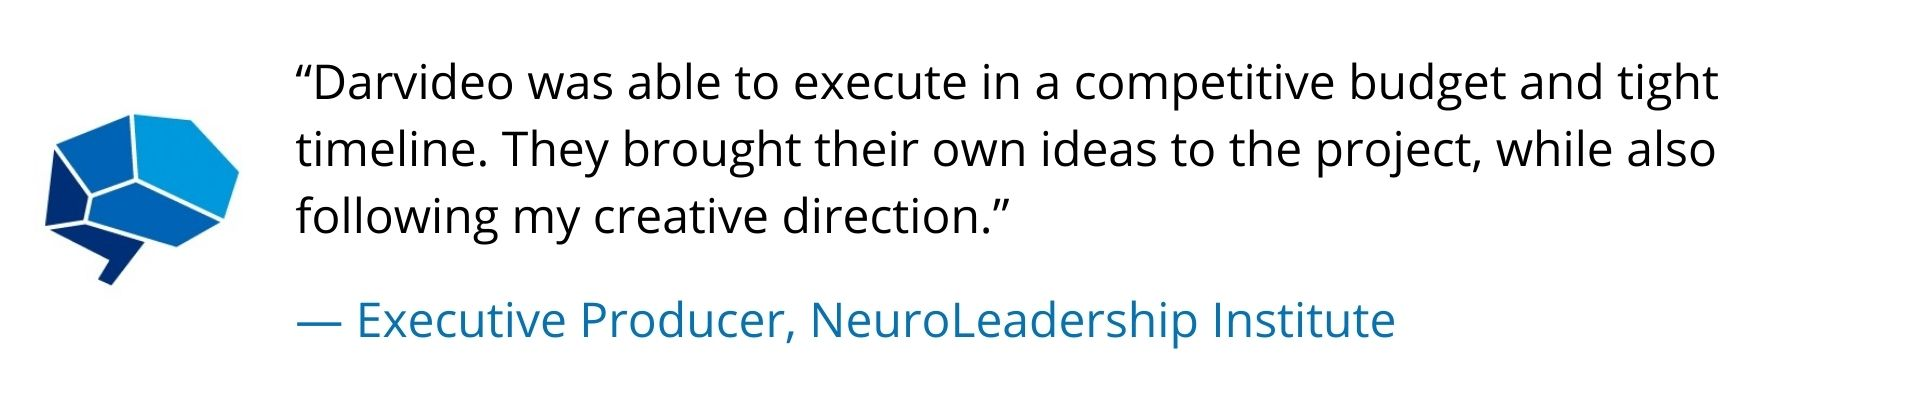 Feedback about the studio Darvideo by Executive Producer, NeuroLeadership Institute